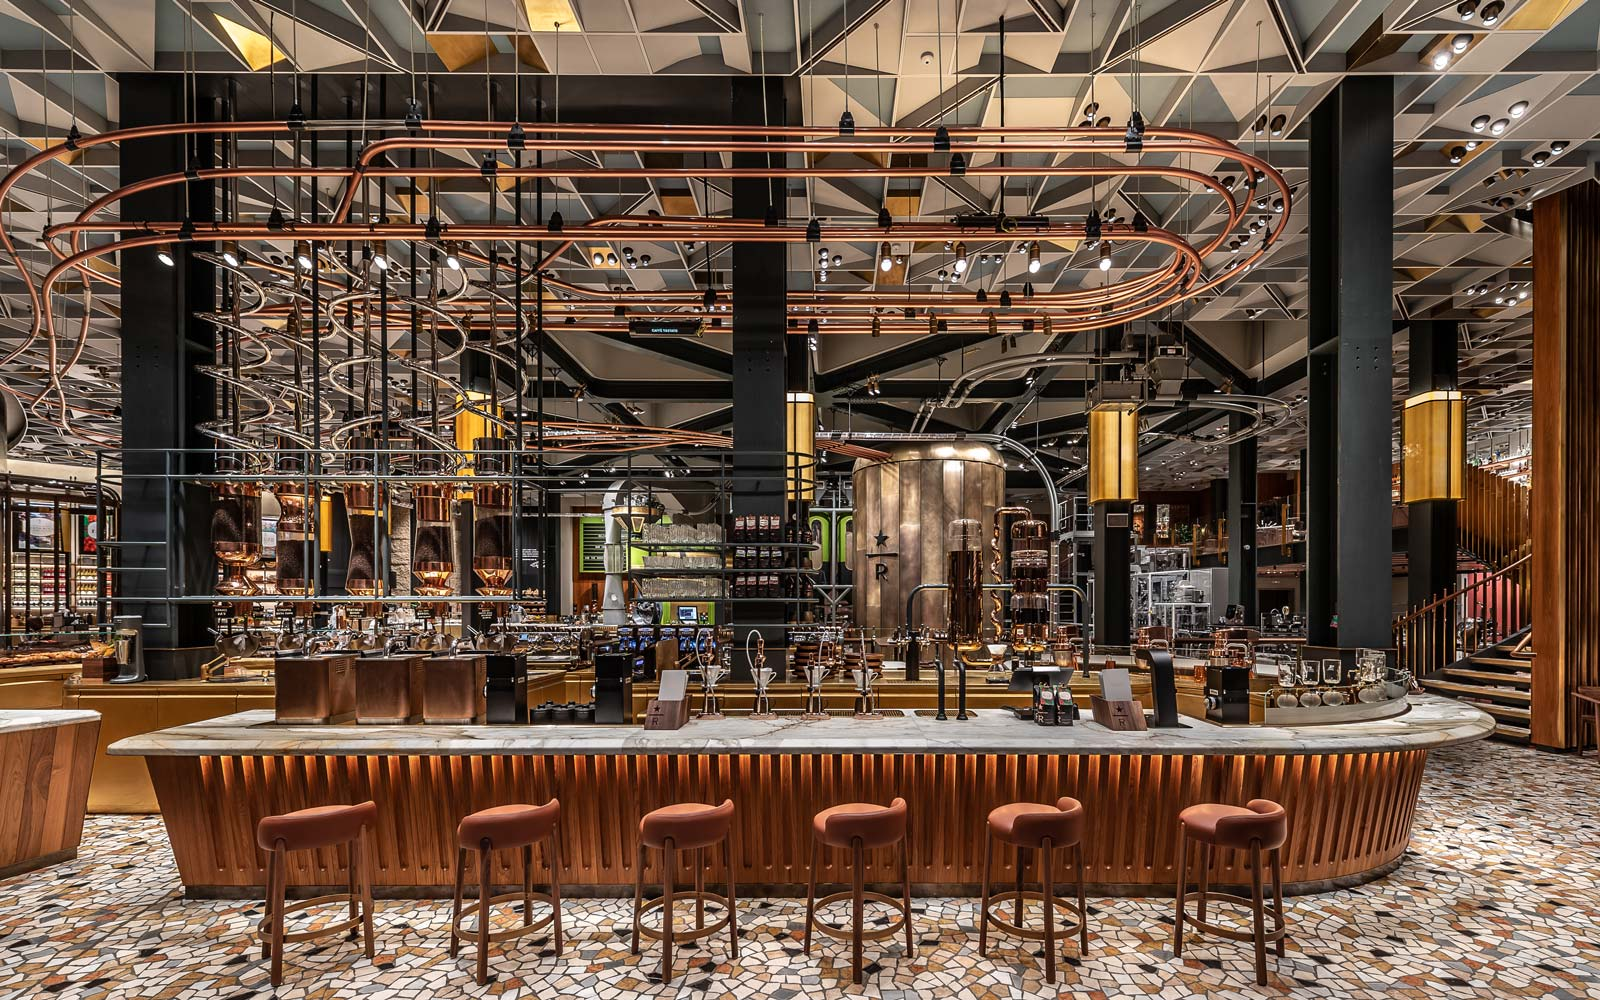 Starbucks' First Roastery in Italy Is What Coffee Dreams Are Made Of